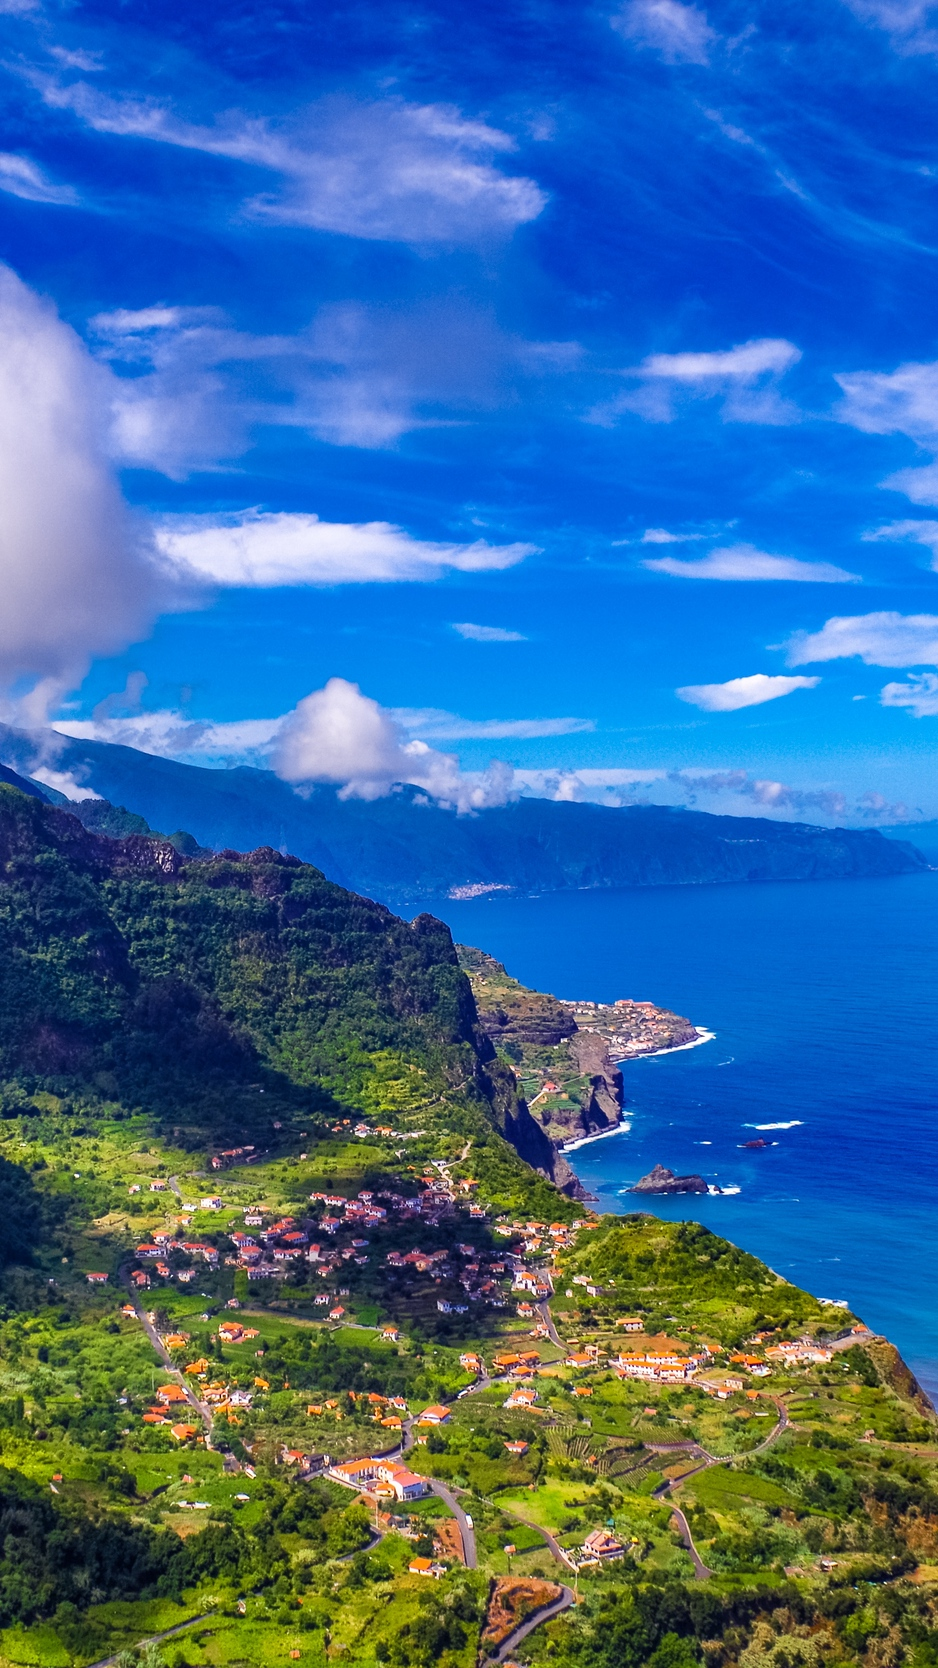 Wallpaper Madeira Portugal Island Sea Mountains